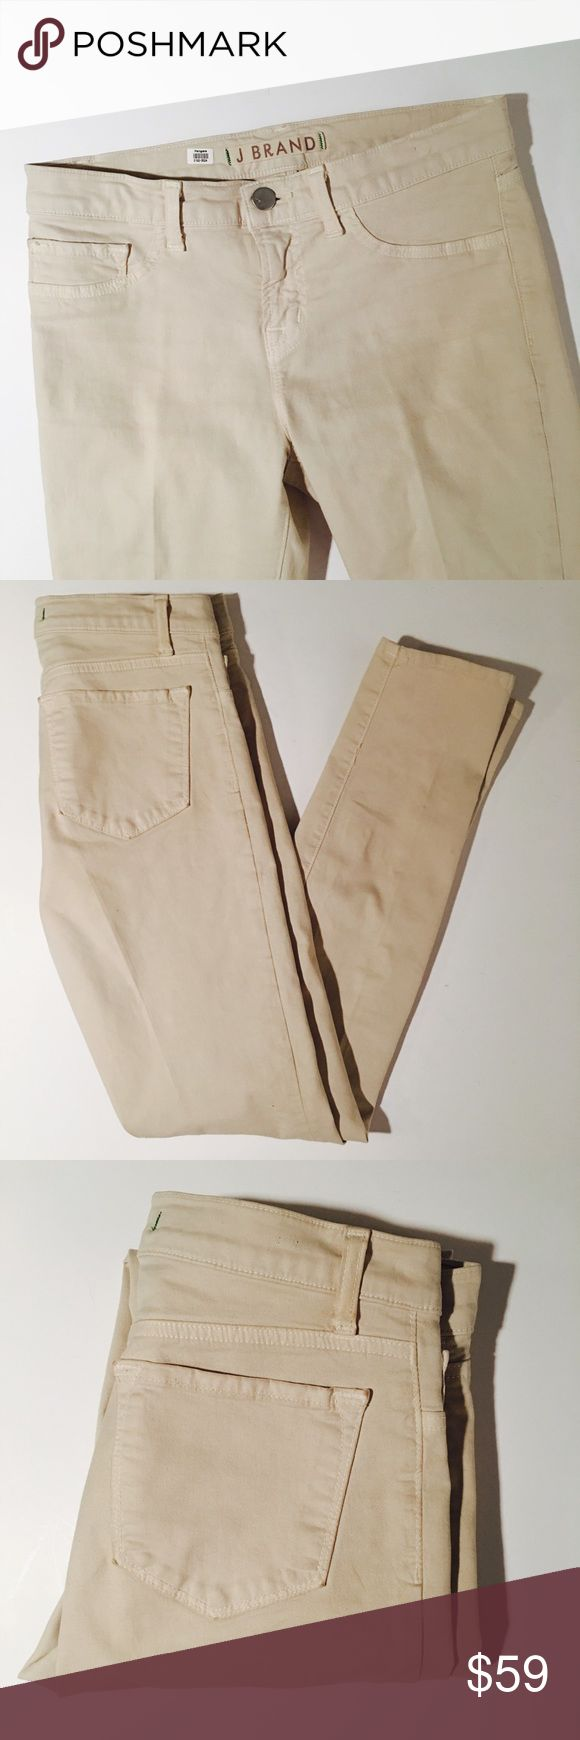 J Brand Tan Skinny Jeans Size 26 J Brand Tan Skinny Jeans. 29 inch inseam. Perfect condition without flaws.   All items come from a smoke free home and are shipped on the same or following day an order is placed.   Reasonable offers are considered and often accepted. Deals on bundles are also available.   Items are shipped in polymailers placed INSIDE boxes to ensure all purchases are completely protected from damage or weather conditions. J Brand Jeans Skinny